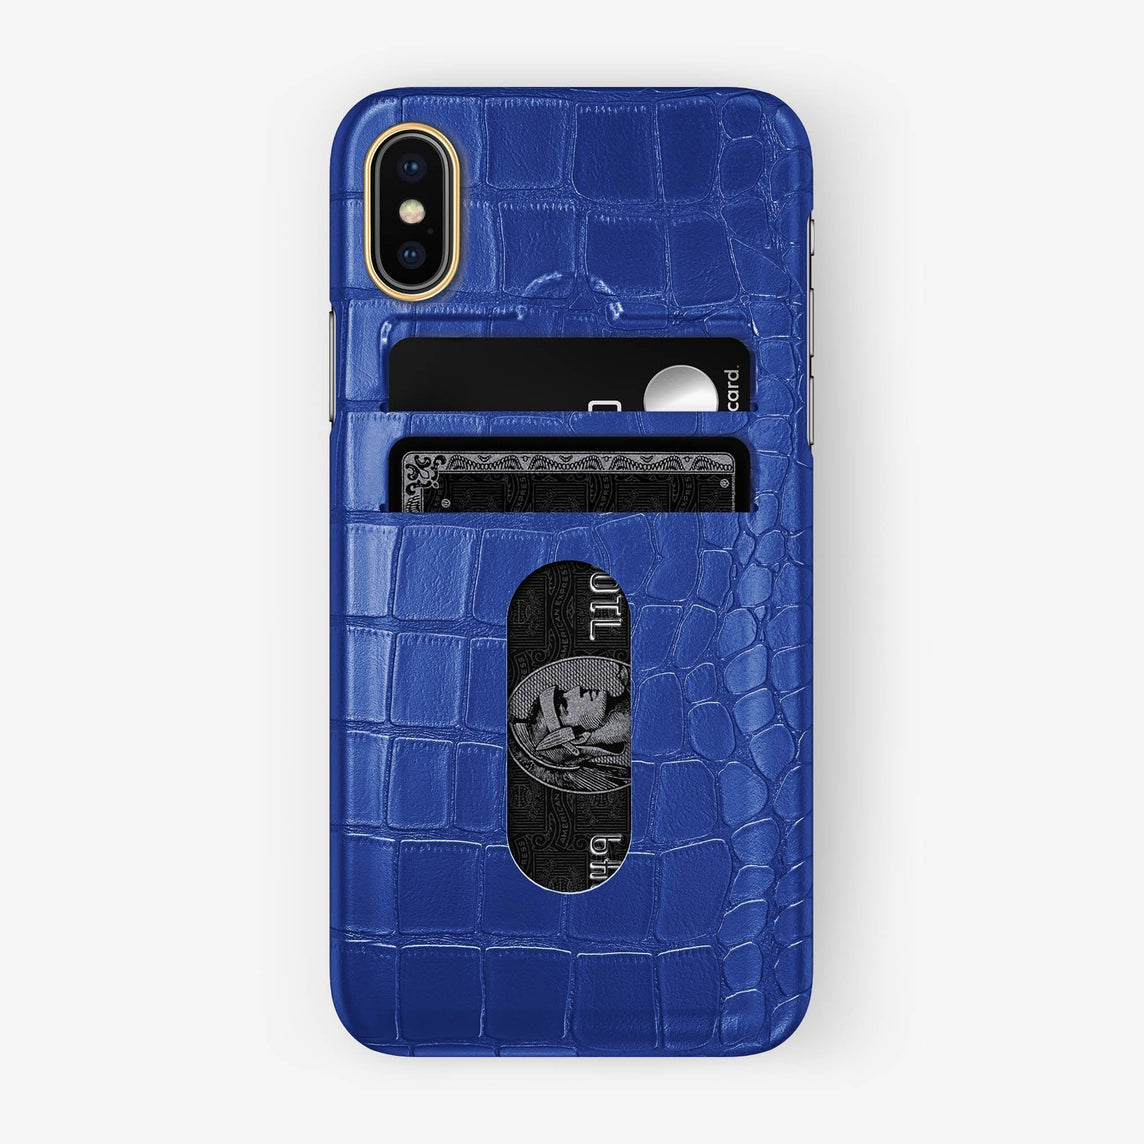 Alligator Card Holder Case iPhone Xs Max | Peony Blue - Yellow Gold - Hadoro